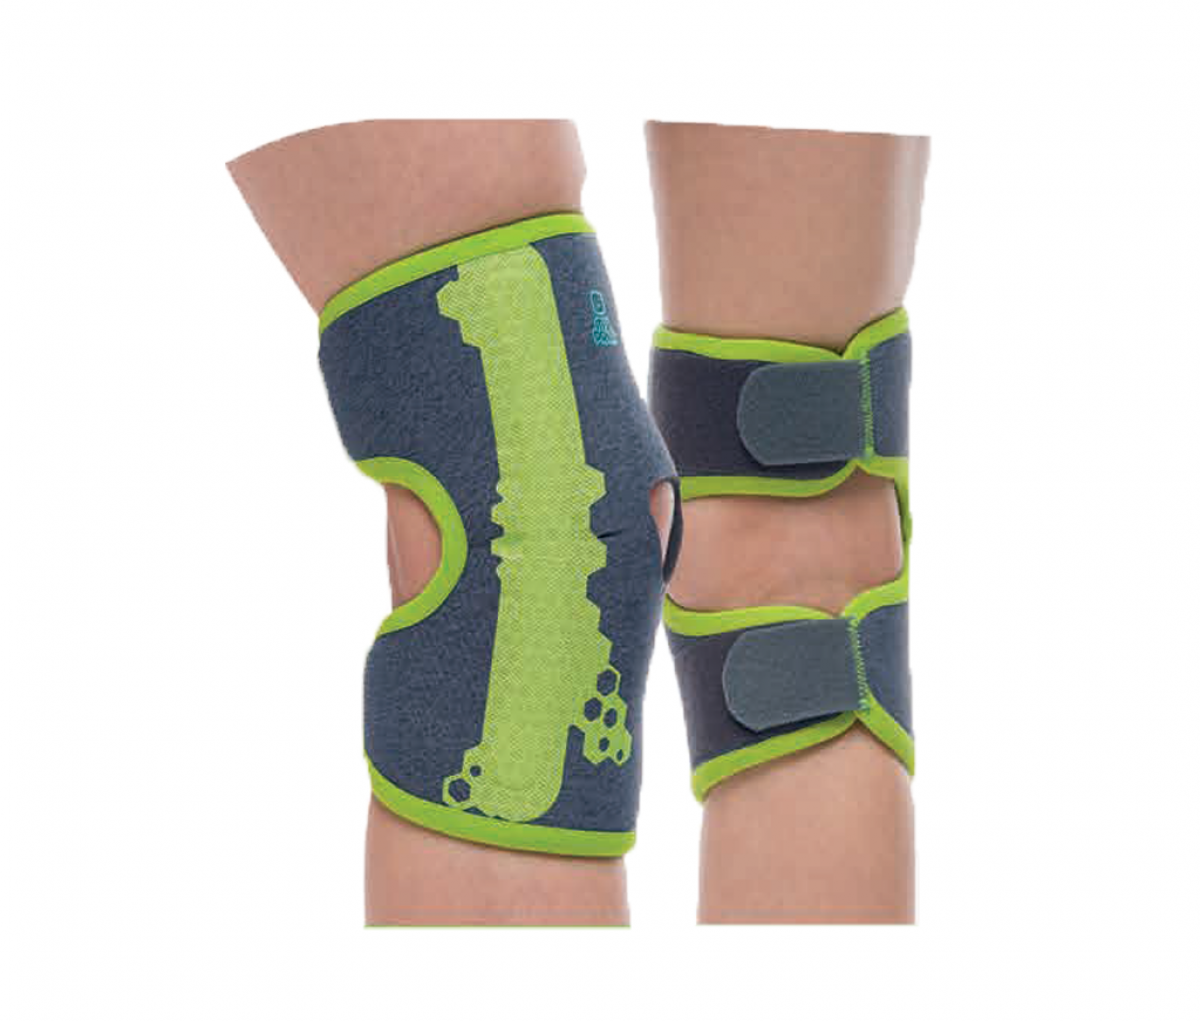 KNEE SUPPORT WITH PATELLA PAD AND STAYS - T1 MPK700